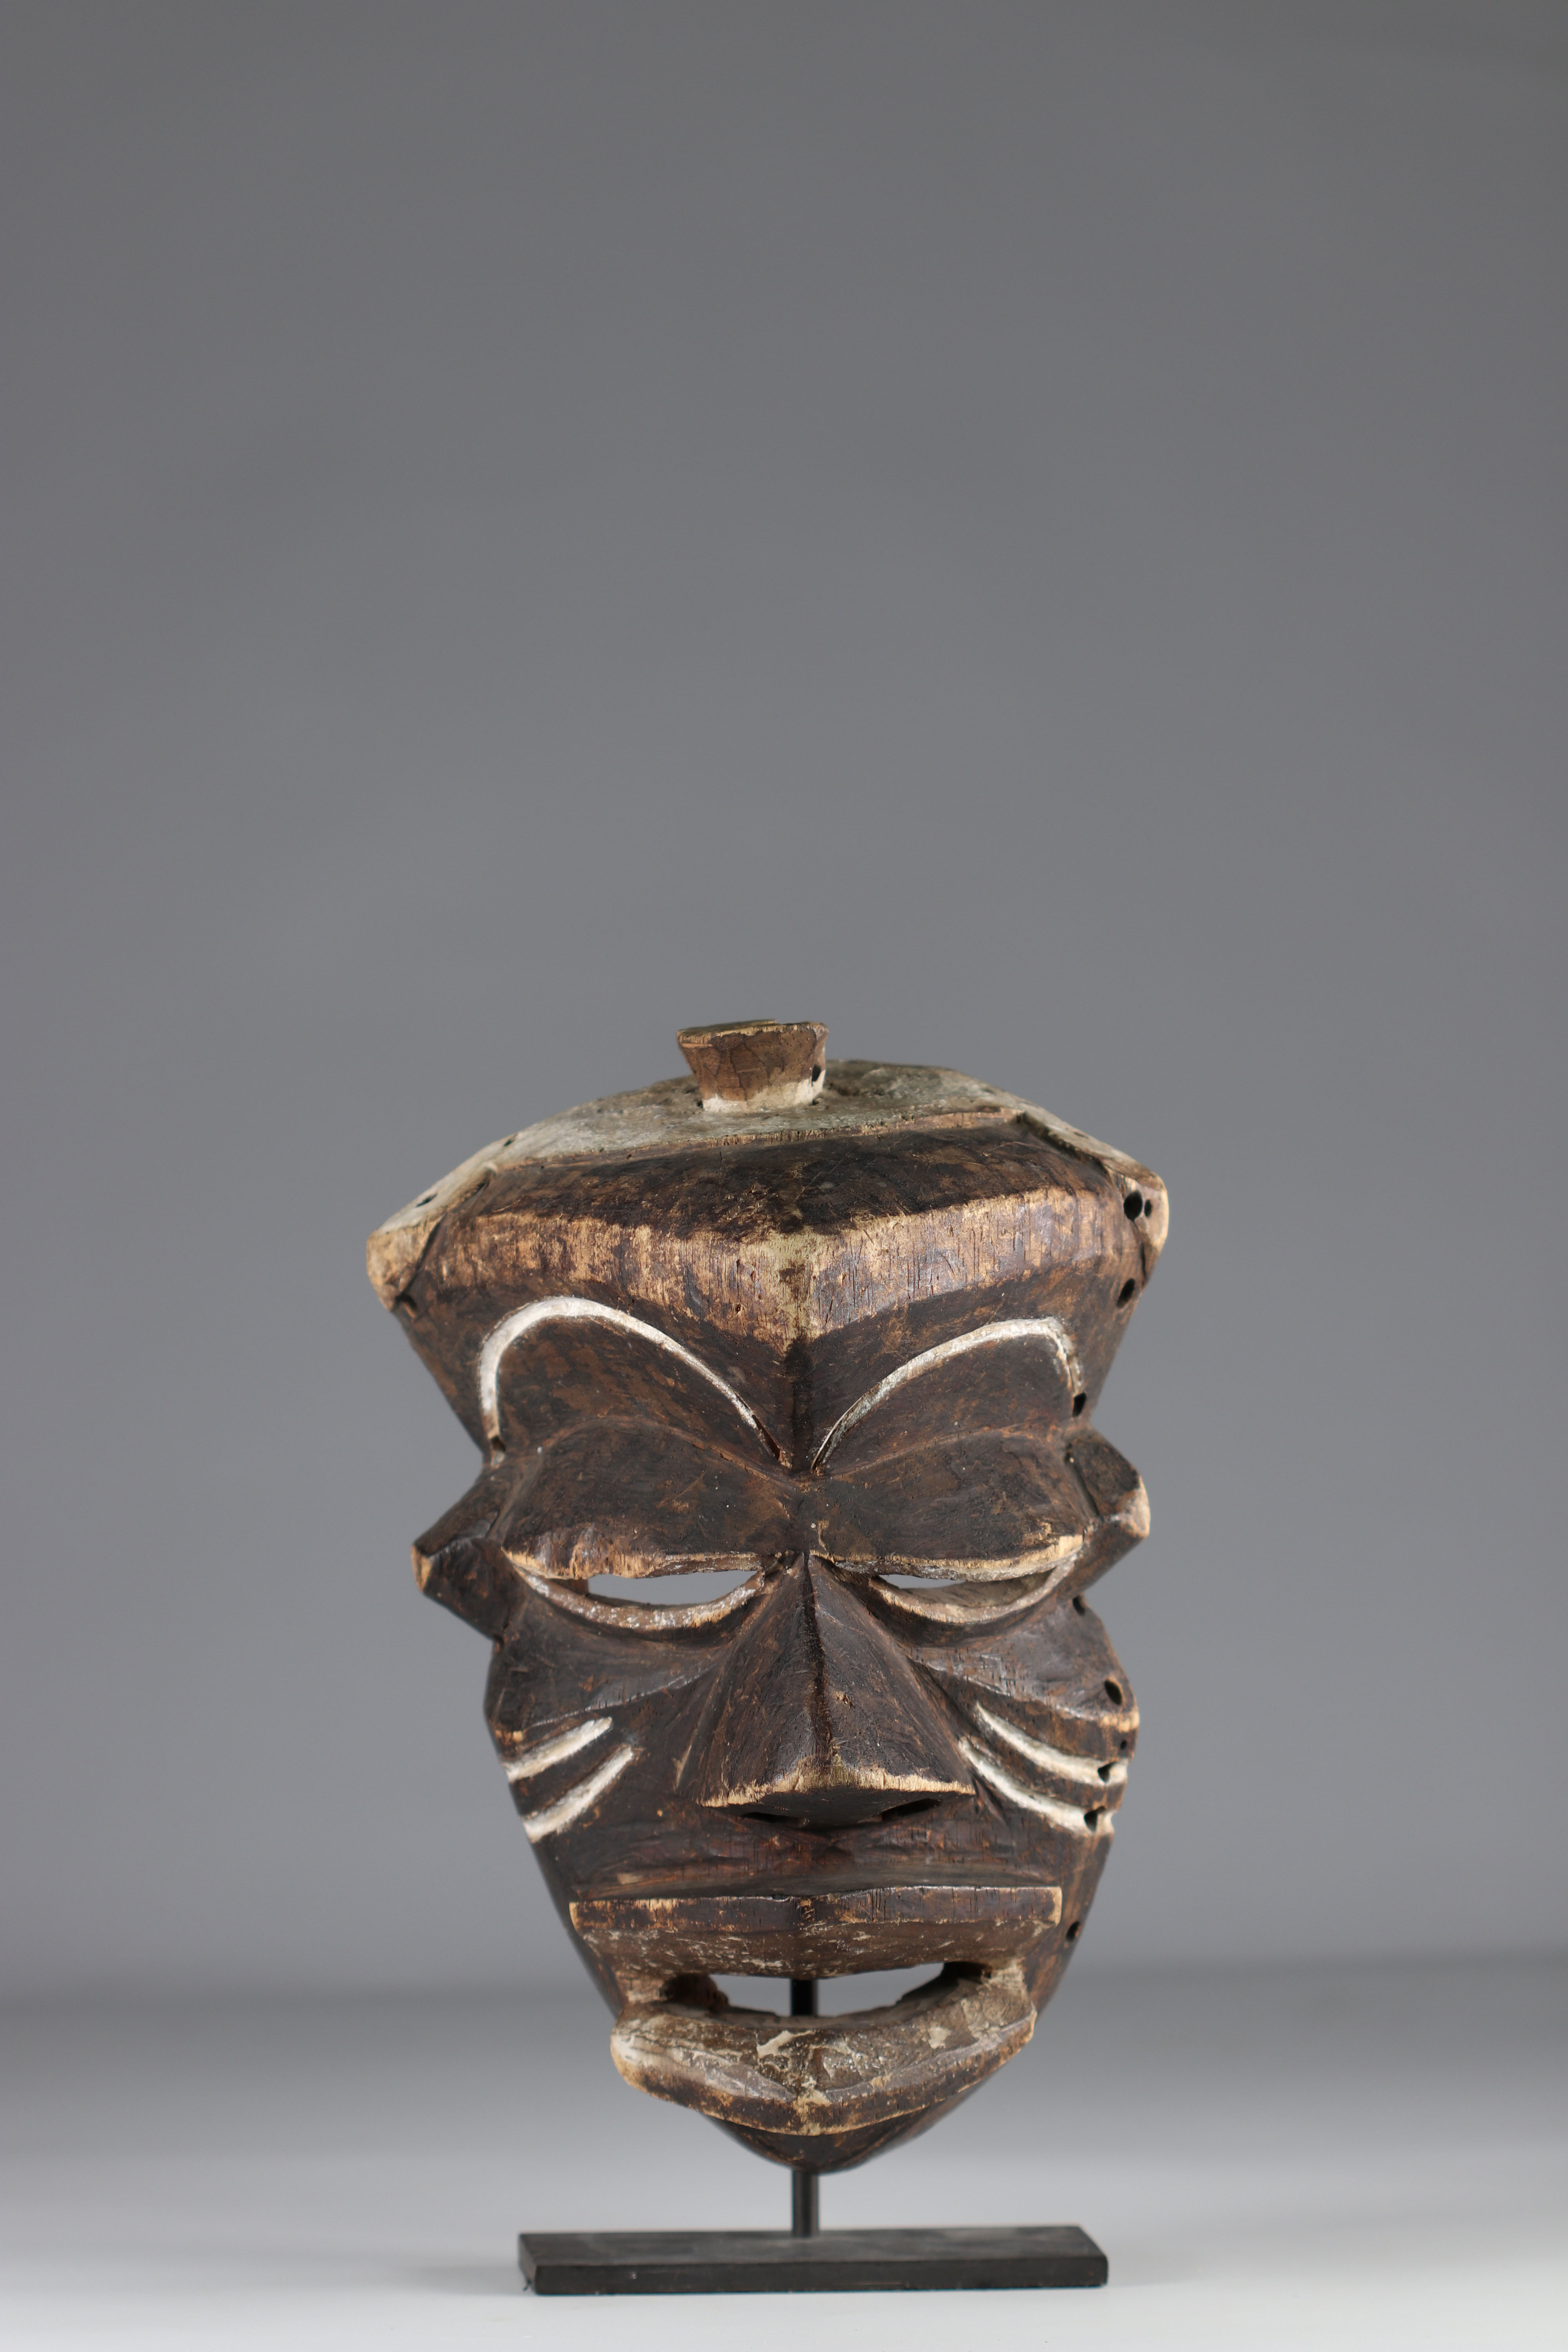 Rare expressive Pende mask. - Ground floor mid-20th - Image 2 of 4